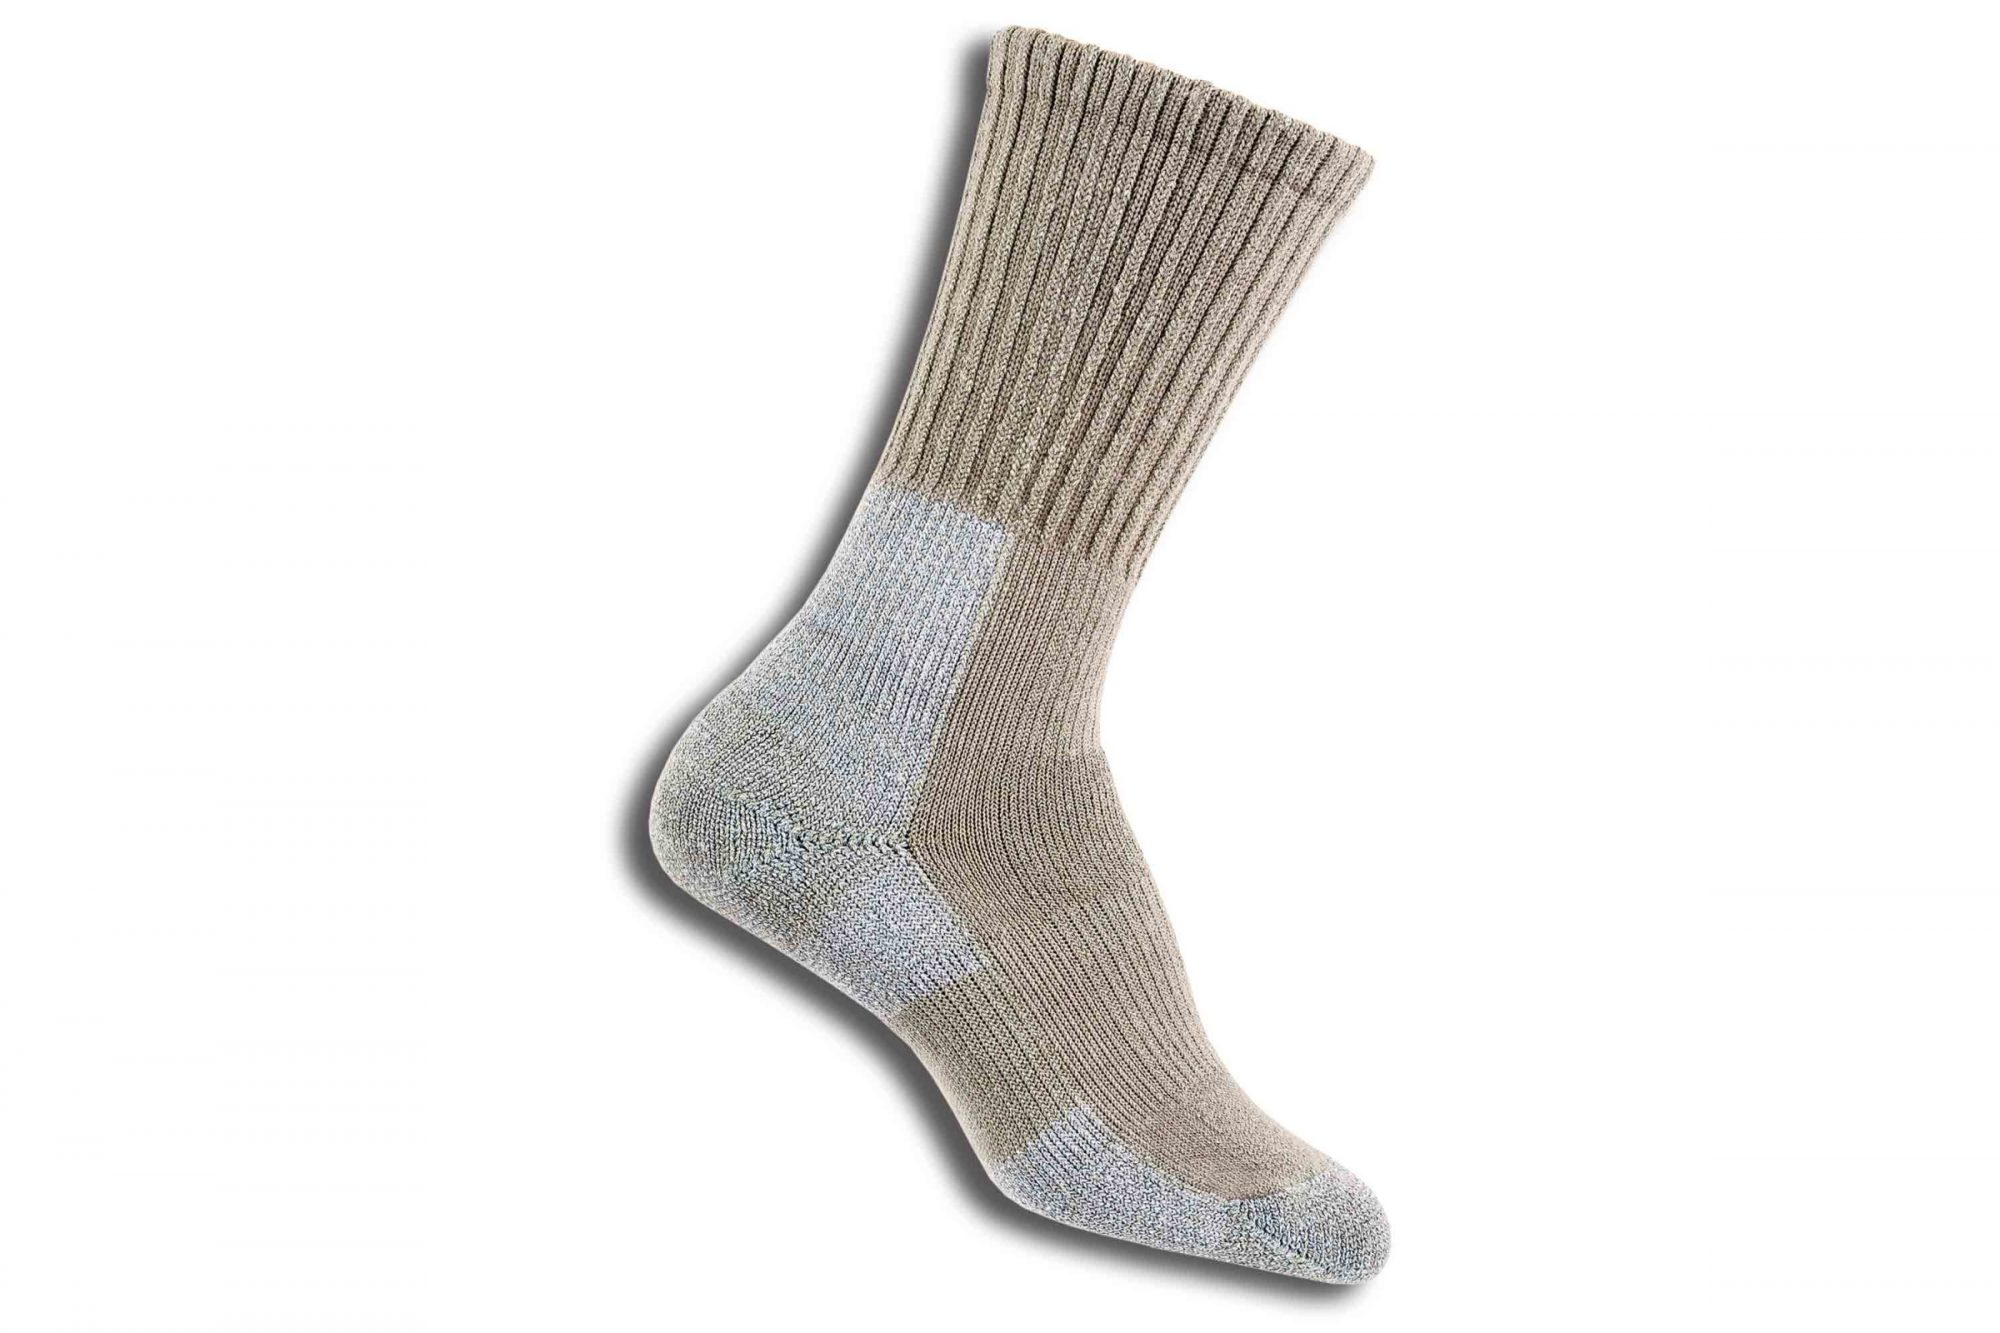 Thorlos Women's Moderate Padded Light Hiking Crew Sock